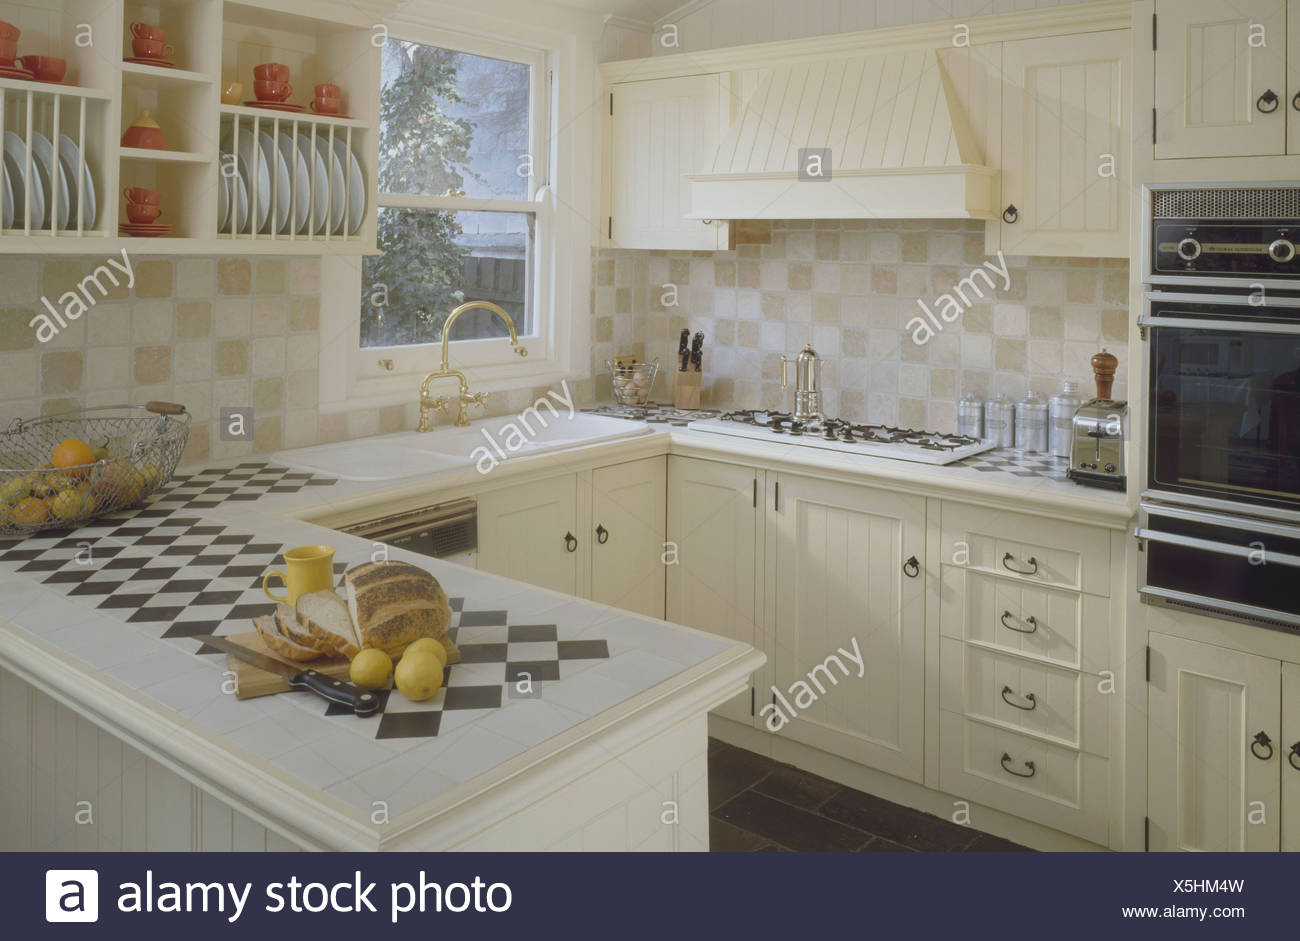 Black White Tiles In Tiled Worktop Of Peninsular Unit In Small Kitchen With Cream Units And Wall Tiles Stock Photo Alamy